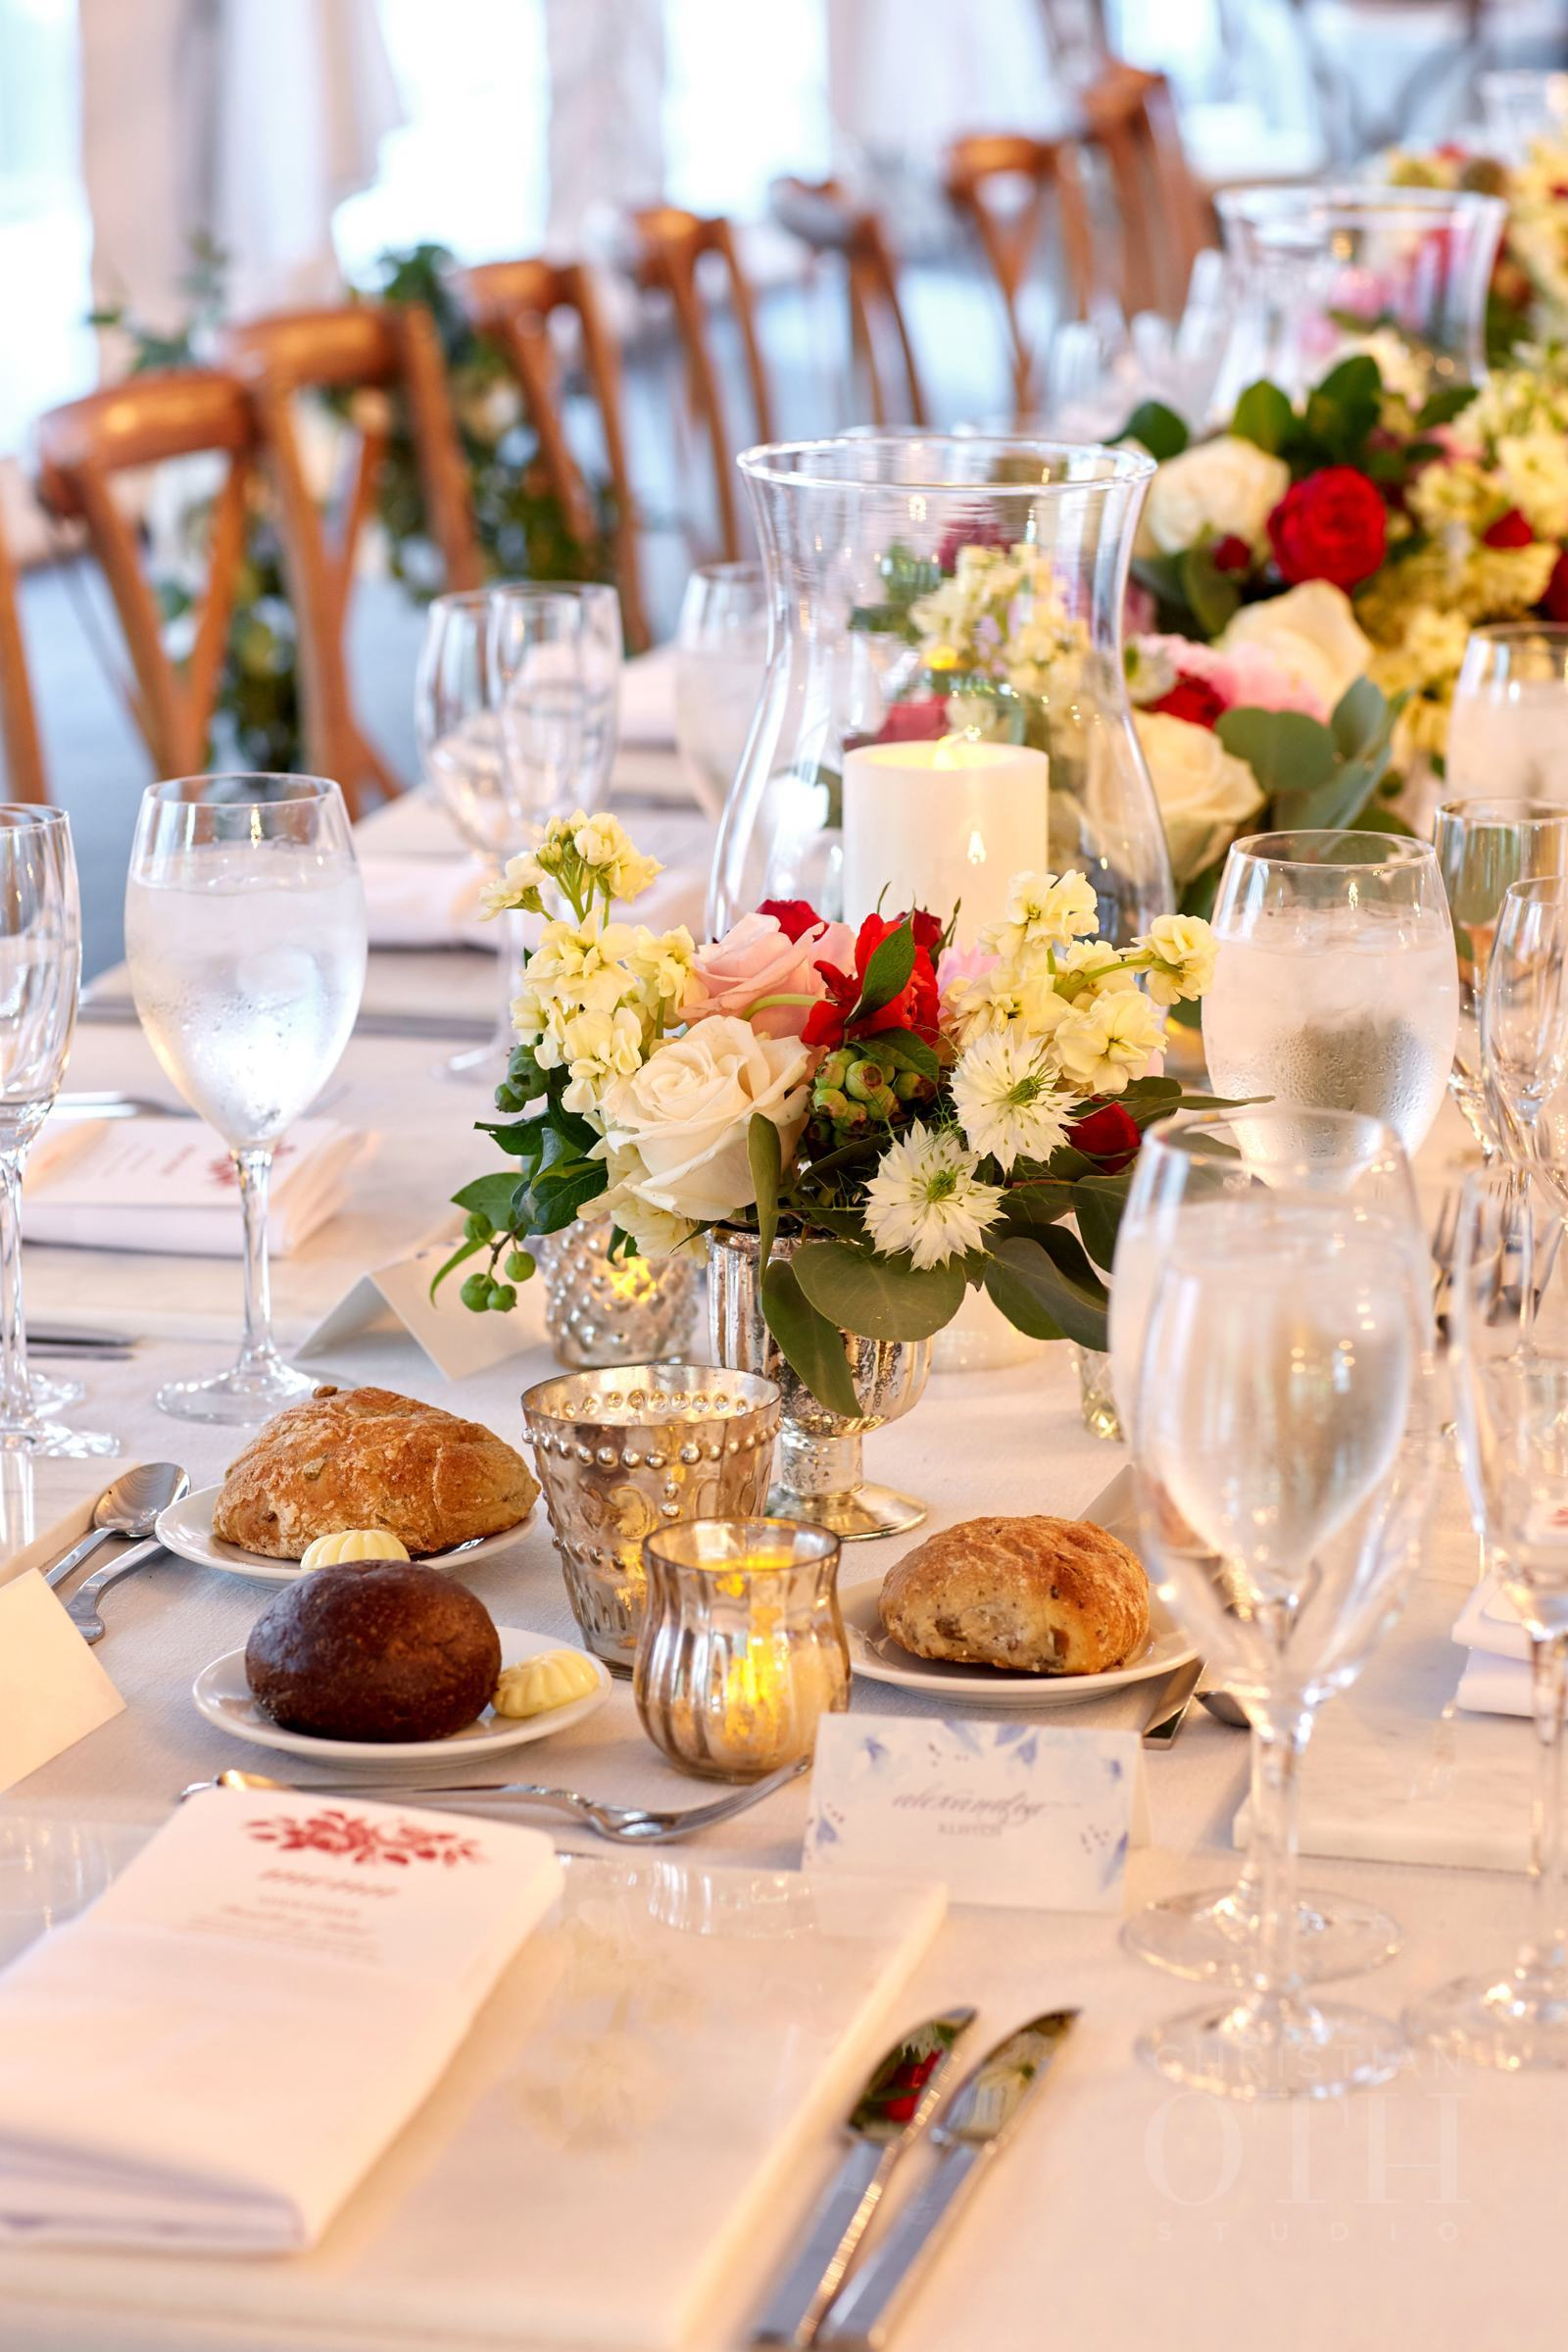 Head table views.  Photo by Glen Allsop for Christian Oth Studio.